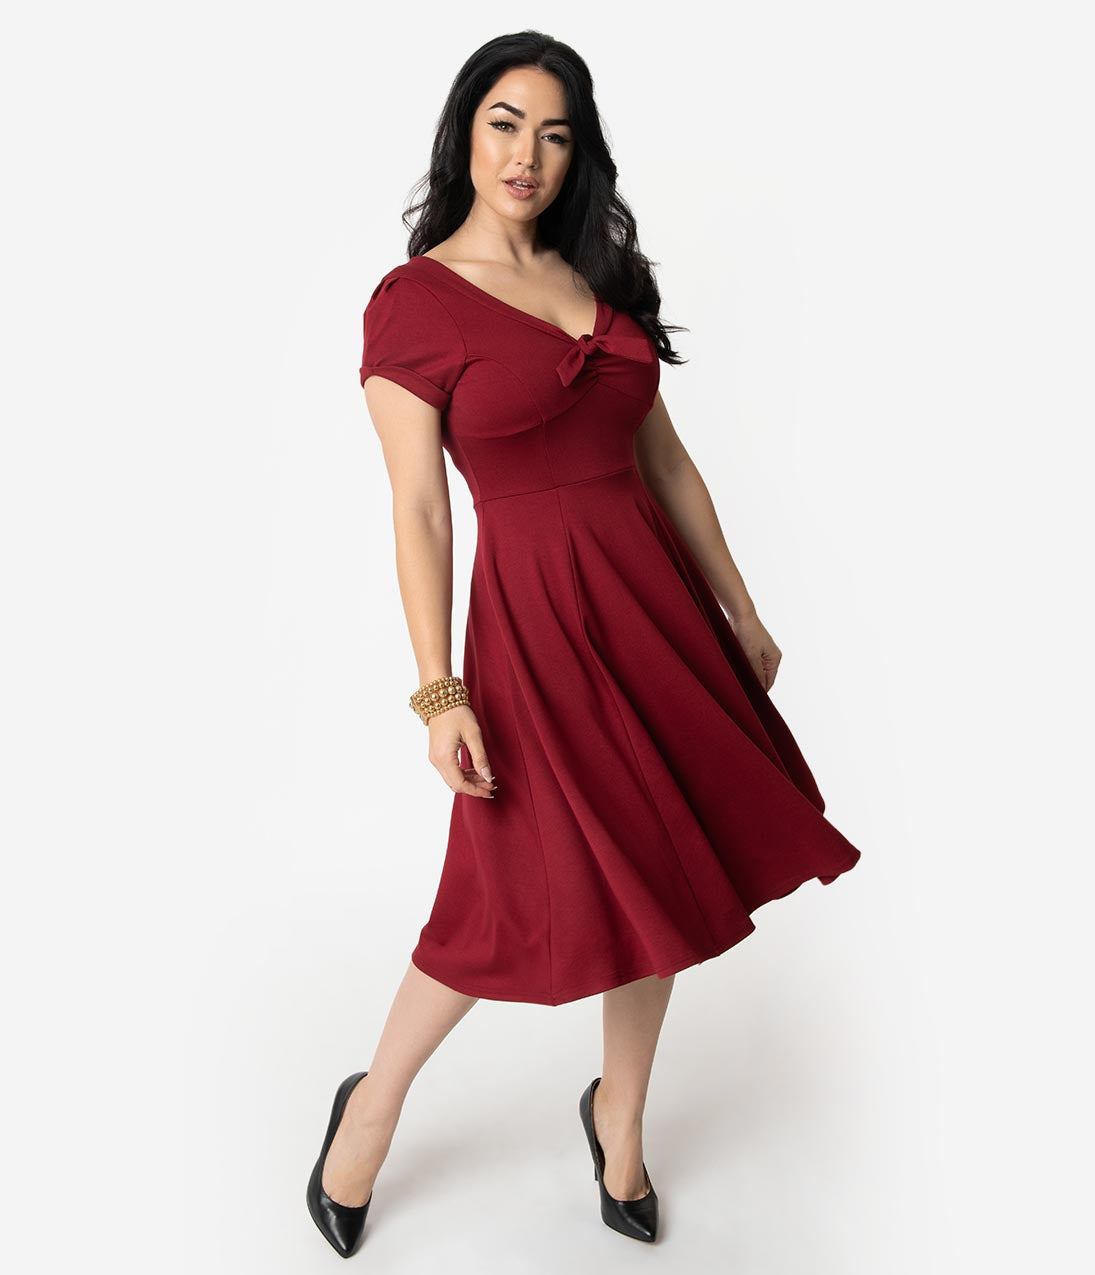 500 Vintage Style Dresses for Sale | Vintage Inspired Dresses Unique Vintage 1940S Style Burgundy Knit Short Sleeve Natalie Swing Dress $88.00 AT vintagedancer.com